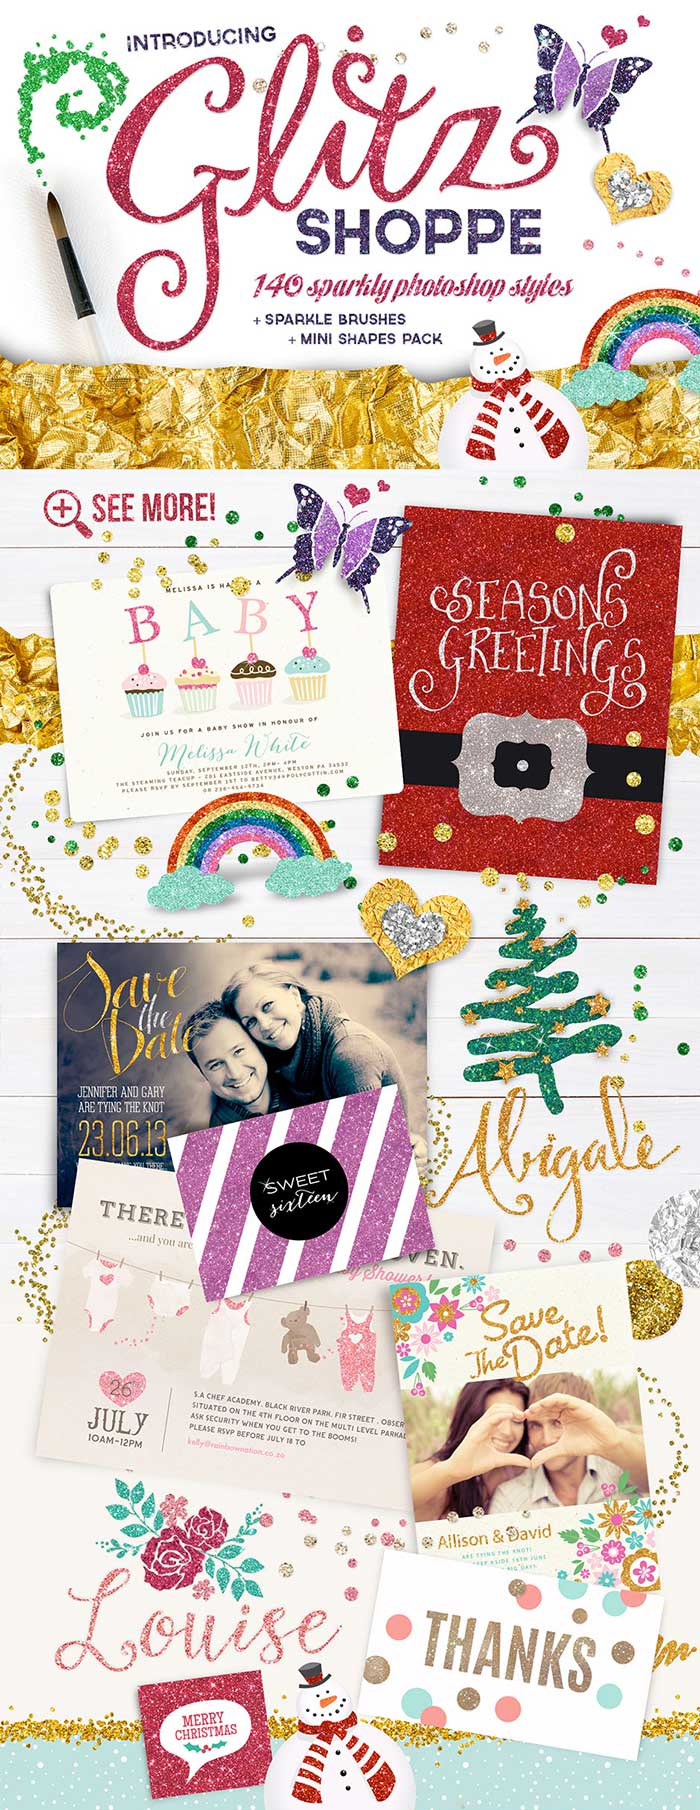 The Glitz Shoppe! A whopper collection of 140 lovingly crafted Photoshop Sparkly Colourful Styles by Nikki Laatz